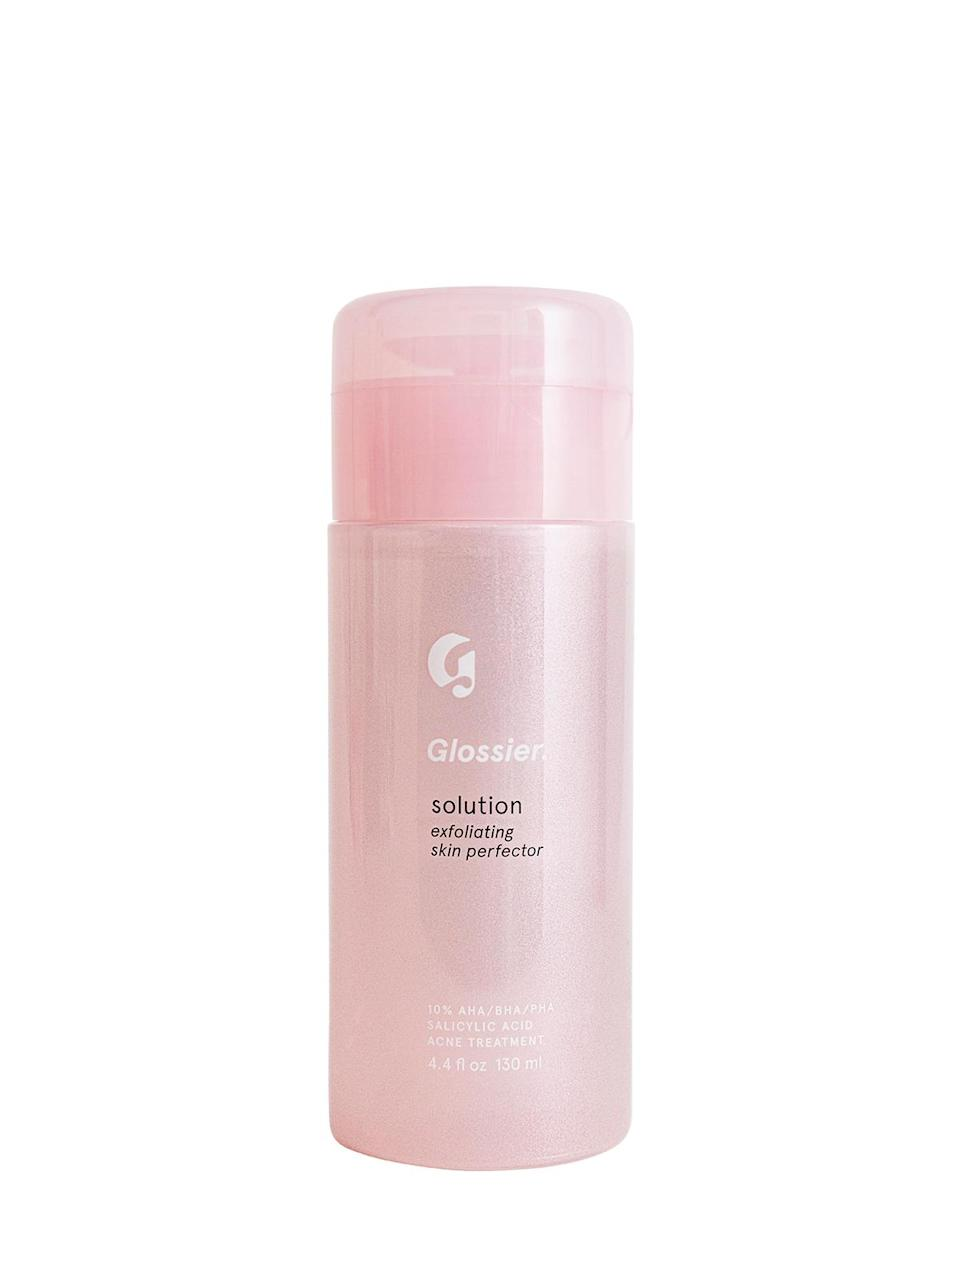 """<h3>Solution</h3> <br>Nobody solves a problem like the <a href=""""https://www.refinery29.com/en-us/2018/01/188001/glossier-solution-review"""" rel=""""nofollow noopener"""" target=""""_blank"""" data-ylk=""""slk:Solution"""" class=""""link rapid-noclick-resp"""">Solution</a> — provided, of course, that problem involves dullness, clogged pores, dark spots, or any combination thereof. This gentle exfoliating liquid is the brand's most ambitious skin-care formulation yet, a wonder product that promises brighter, smoother, more balanced skin with regular use. The combination of AHAs, BHAs, and PHAs, totaling a 10% concentration, isn't as potent as some other similar products on the market, which isn't necessarily a bad thing. In fact, it's a solid choice for sensitive skin, a pretty pink gateway drug into the world of acids.<br><br><strong>Glossier</strong> Solution, $, available at <a href=""""https://glossier.79ic8e.net/o6kxg"""" rel=""""nofollow noopener"""" target=""""_blank"""" data-ylk=""""slk:Glossier"""" class=""""link rapid-noclick-resp"""">Glossier</a><br>"""